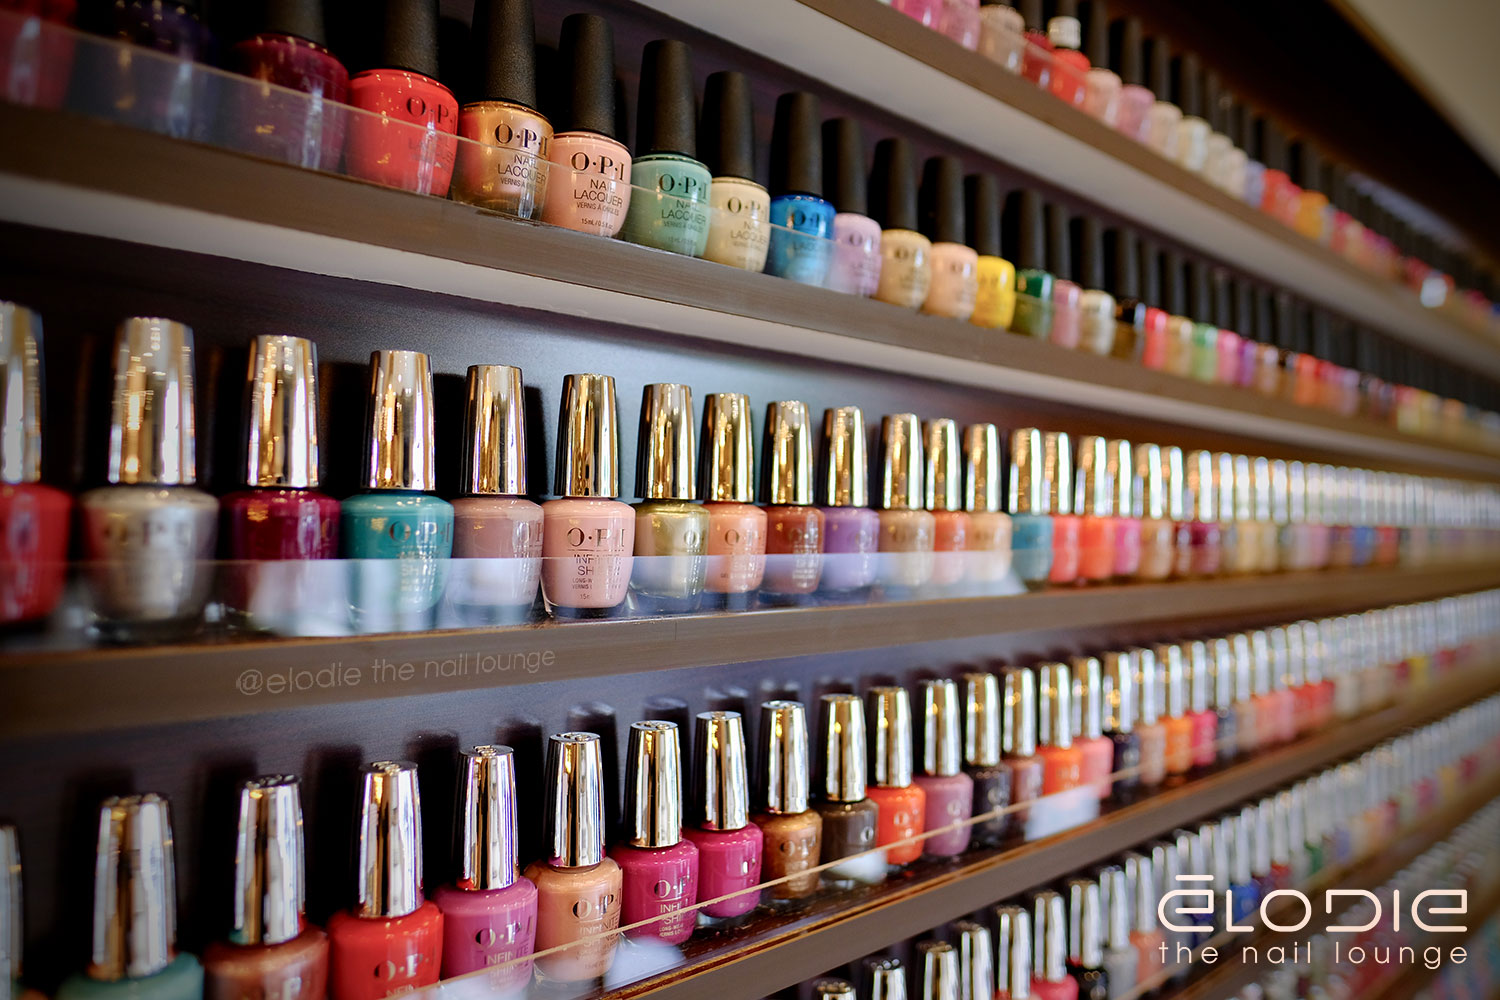 OPI InfiniteShine2 Nail Polishes at Elodie The Nail Lounge at Lewis Center Ohio